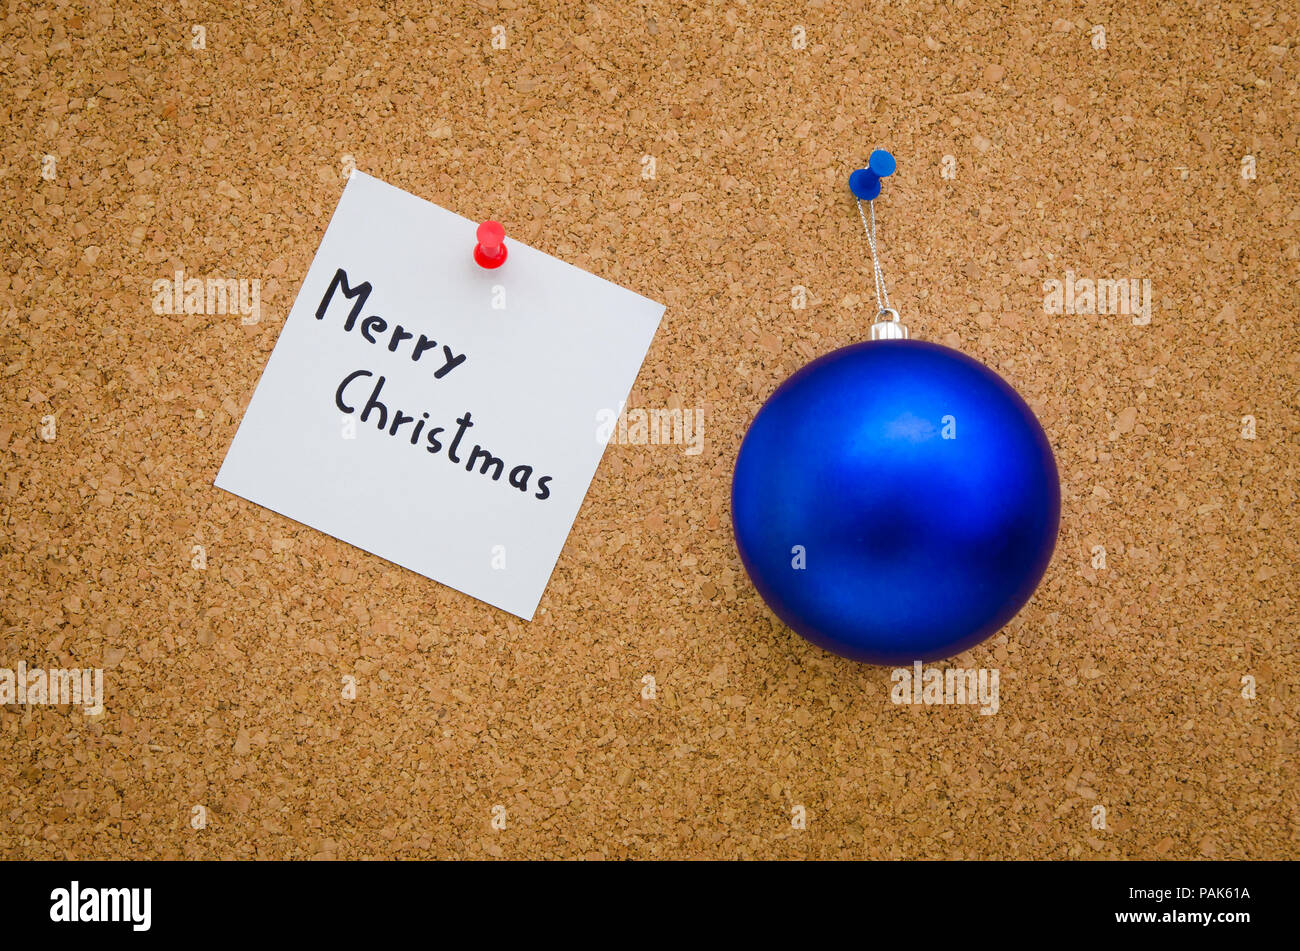 Merry Christmas Written On A Paper Note With A Blue Christmas Globe